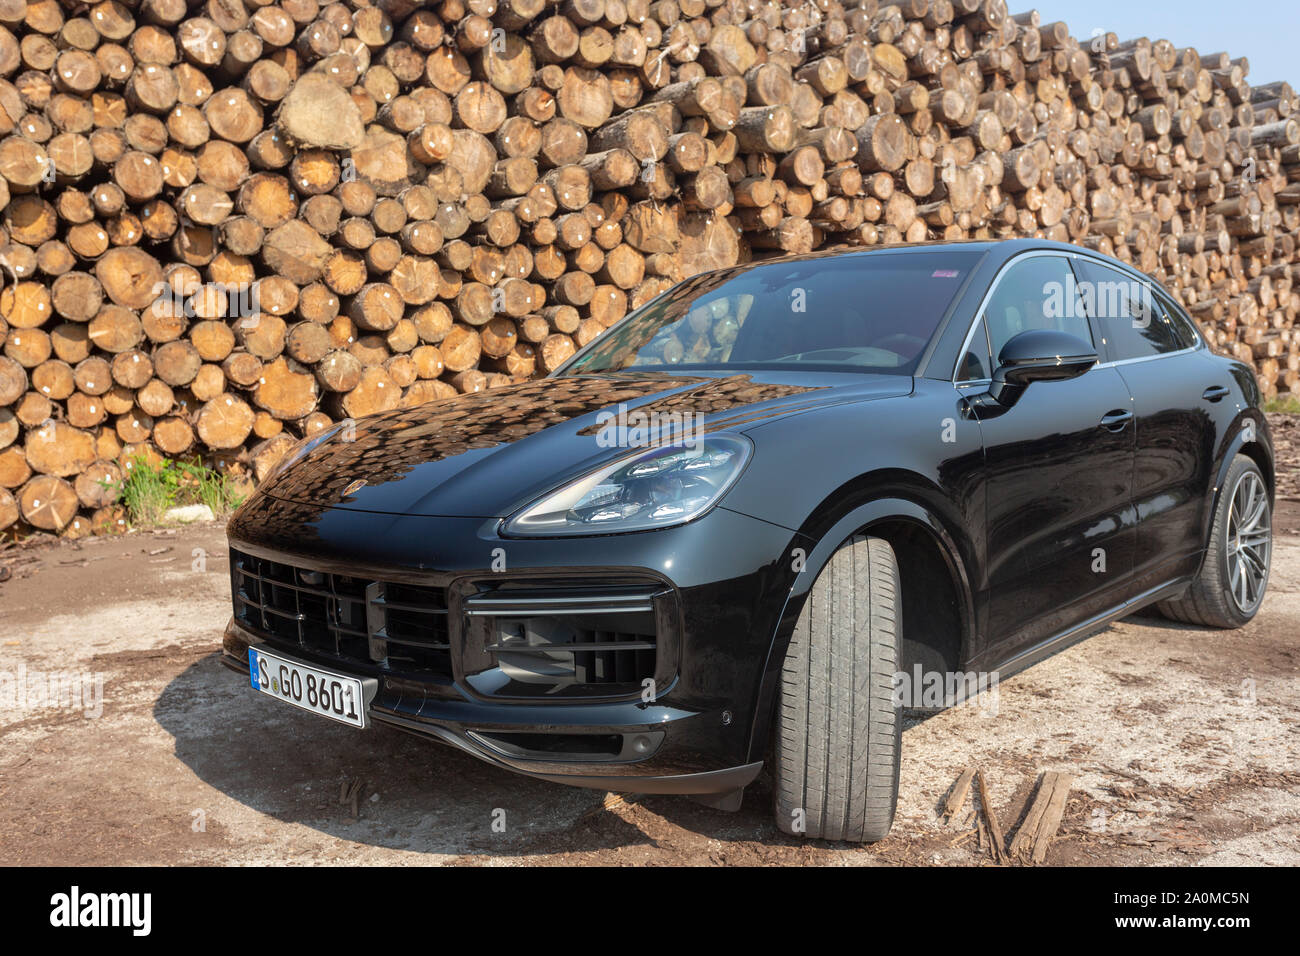 Slovenia Ljubljana 31 August 2019 All New Black Porsche Cayenne Coupe Turbo S From Stuttgart During With Wooden Background Test Drive On Sawmill Stock Photo Alamy